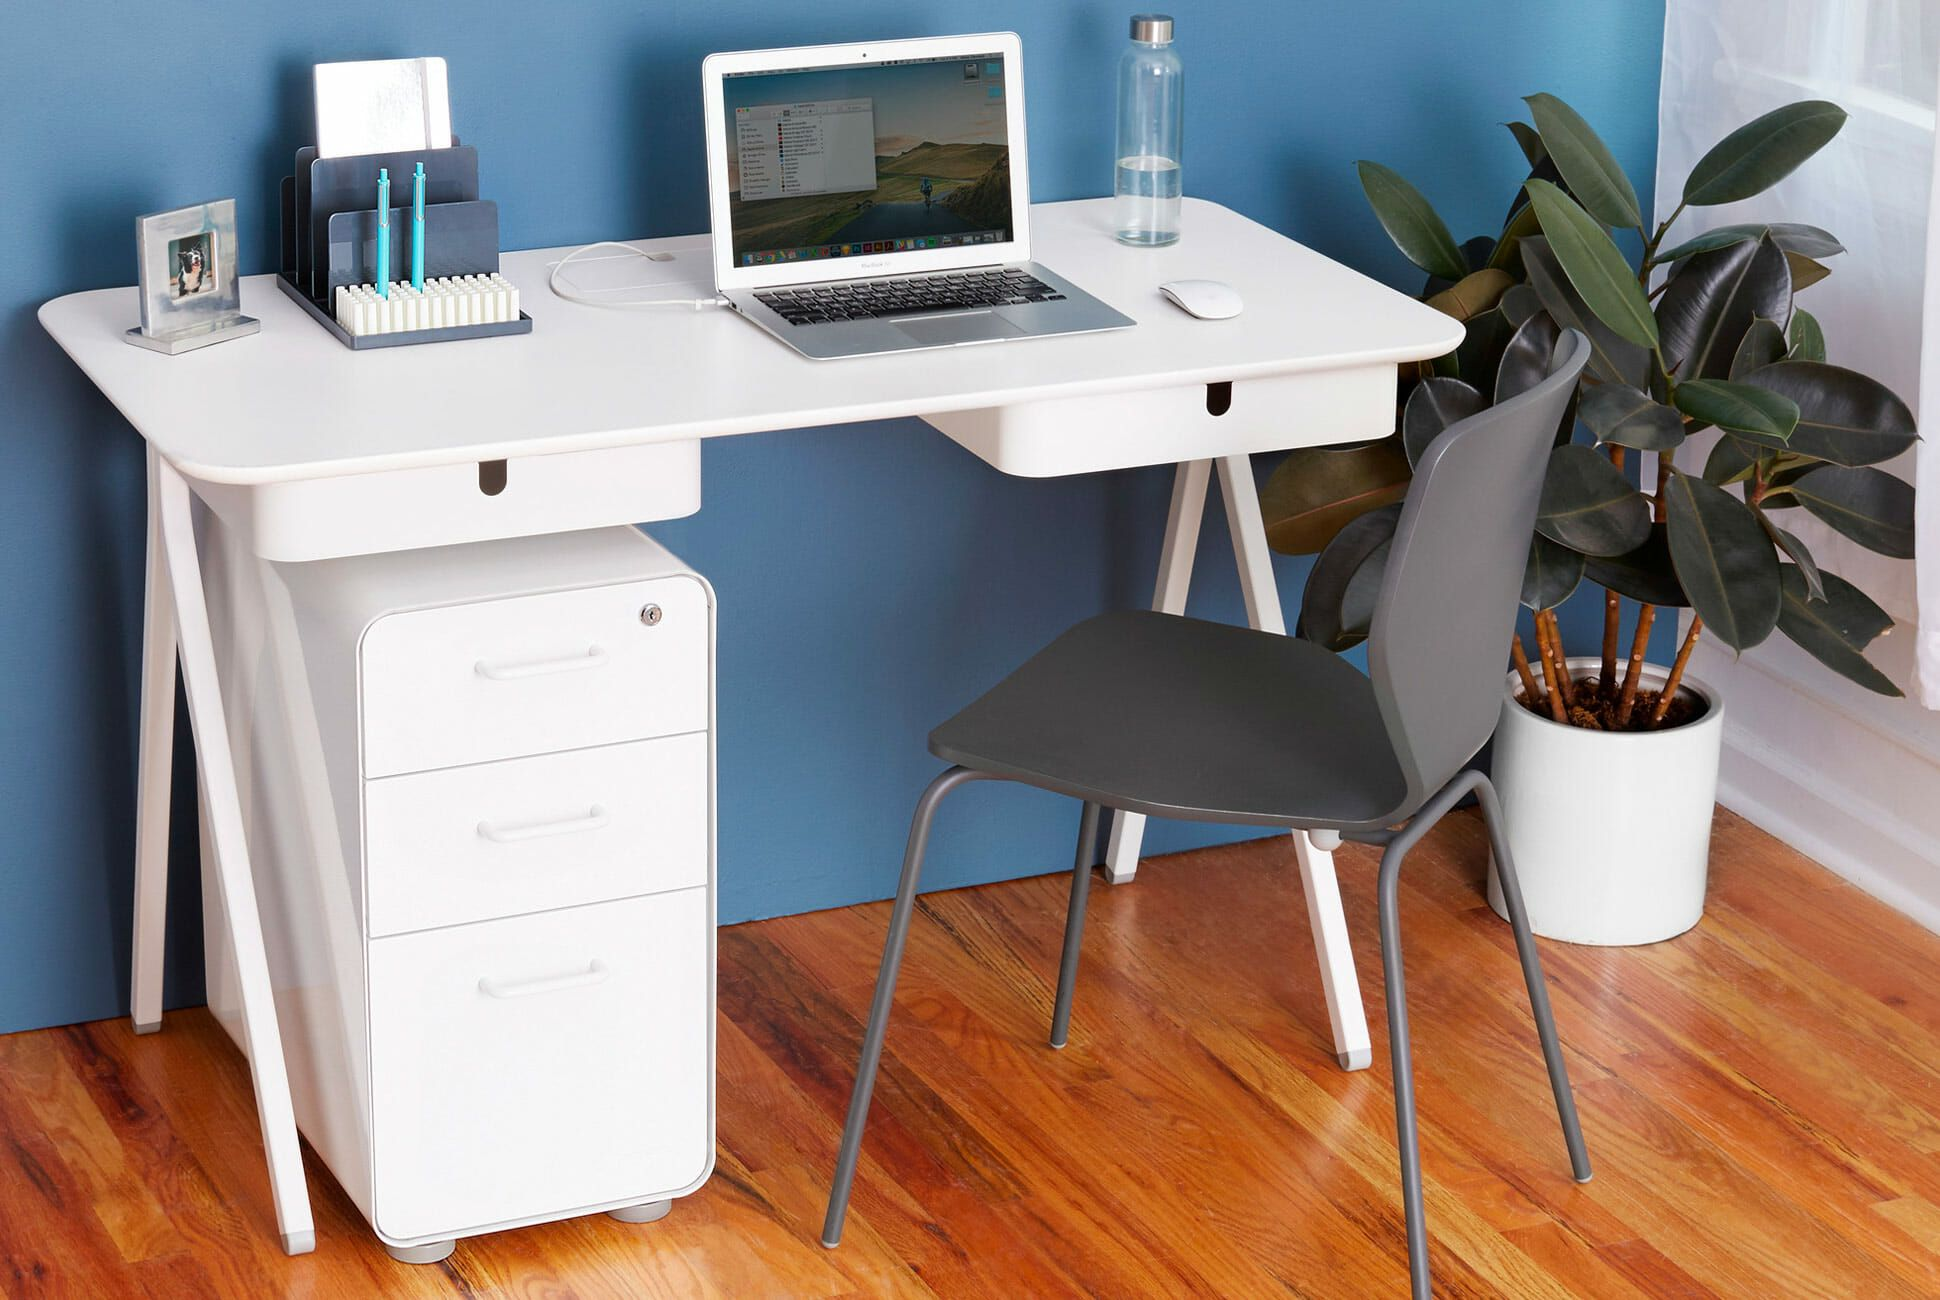 The Best Desks to Deck Out Your Home Office for Every Budget